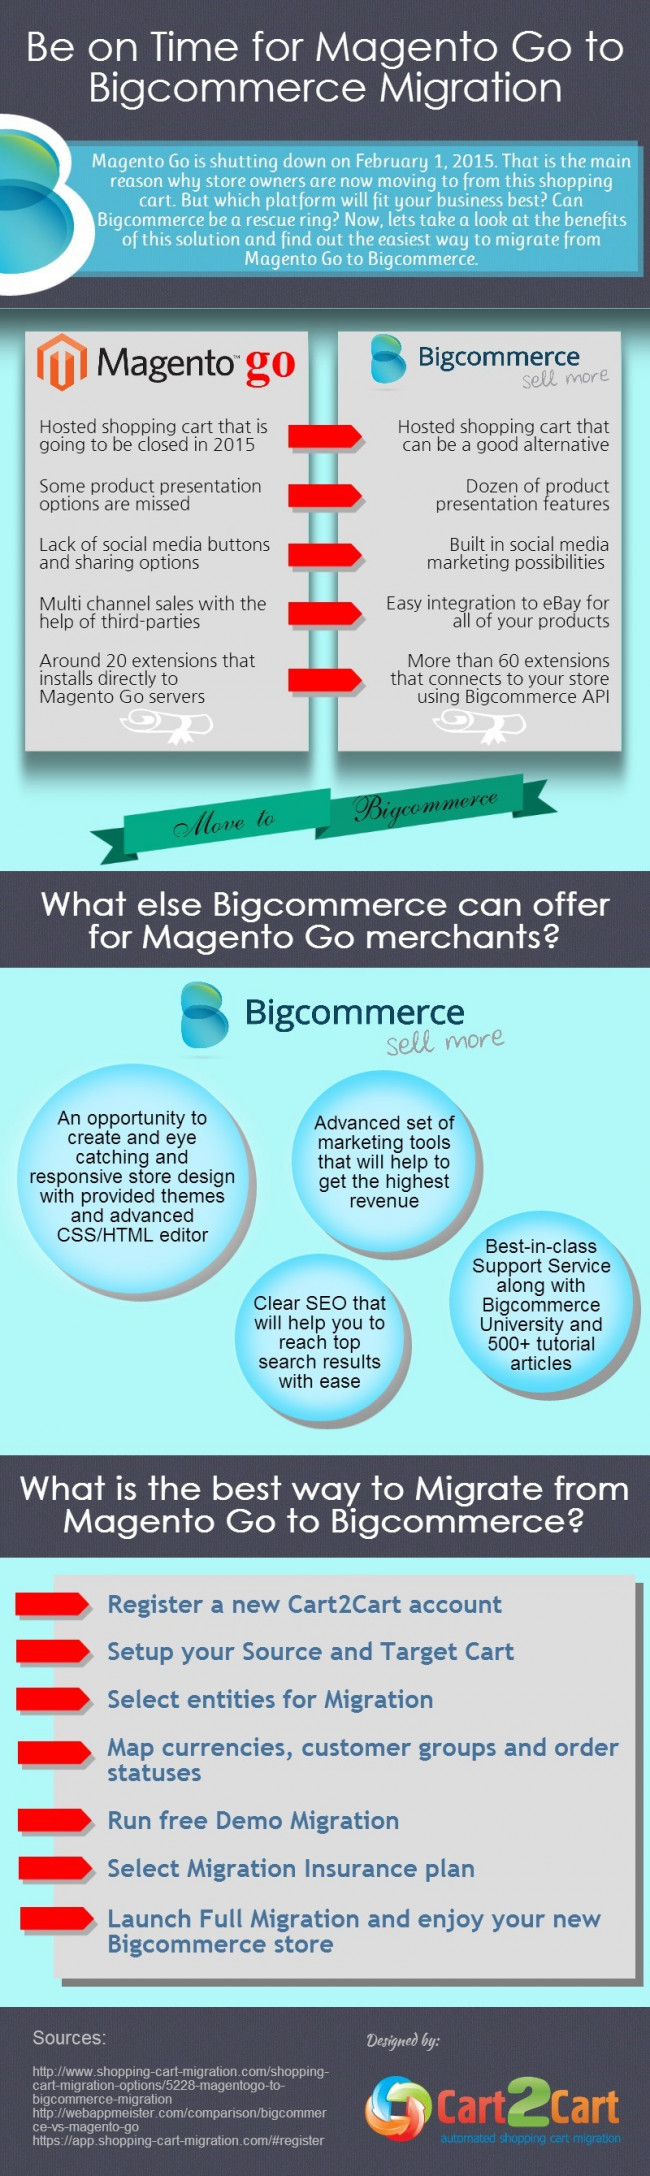 Be on Time for Magento Go to Bigcommerce Migration